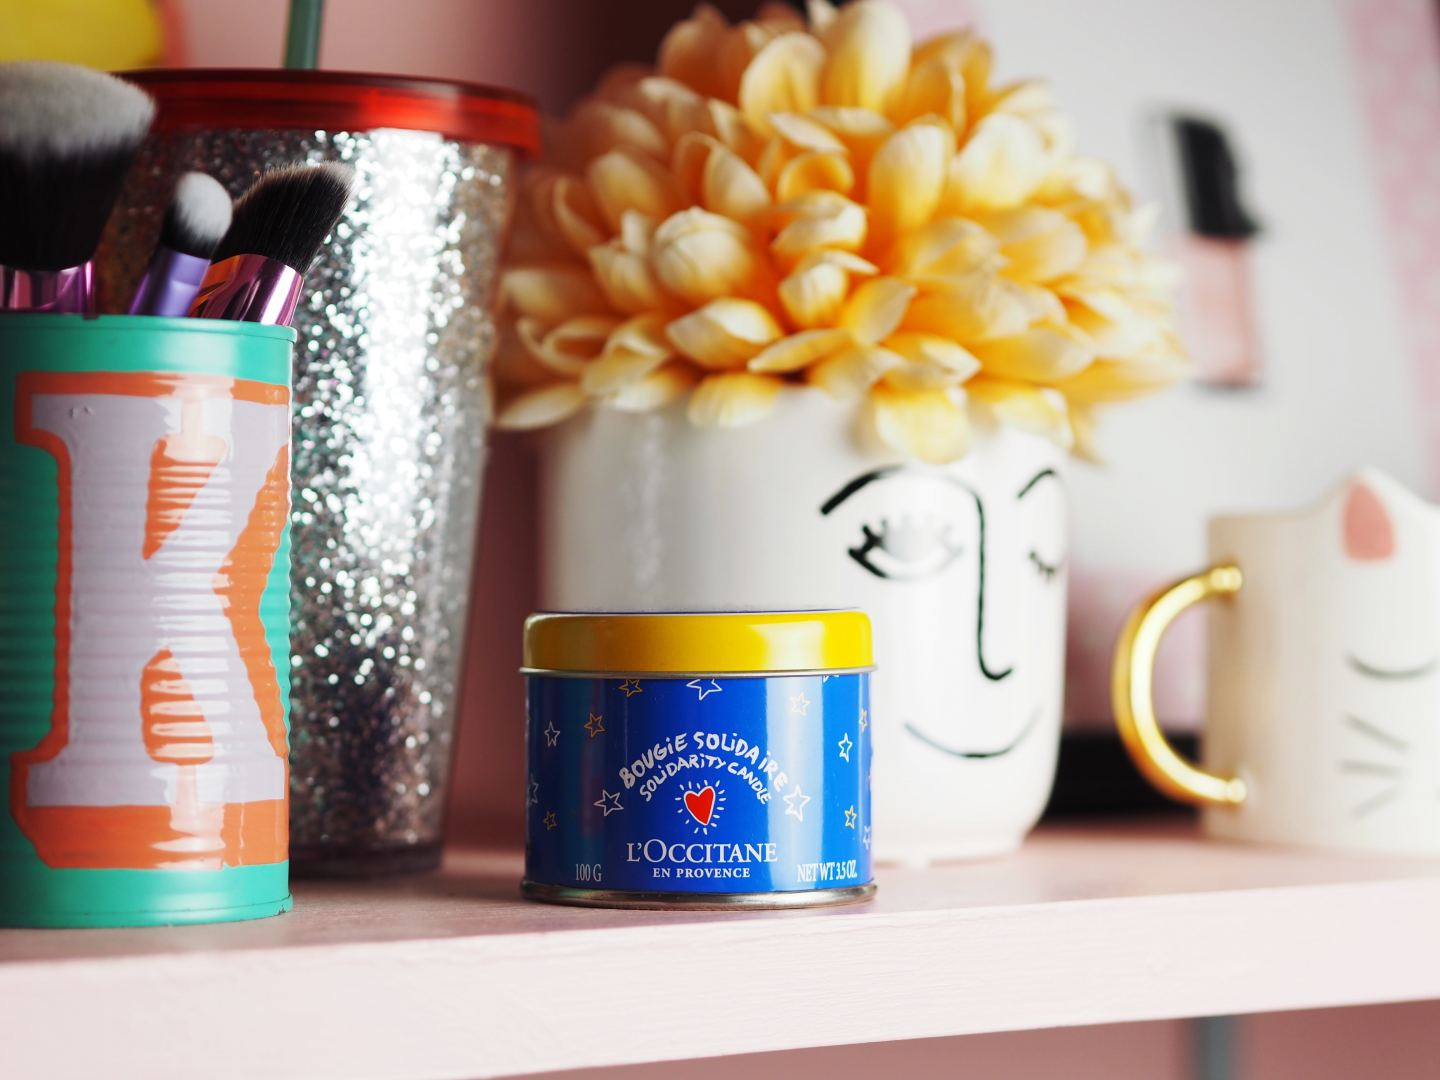 L'Occitane 'Solidarity' Charity Candle